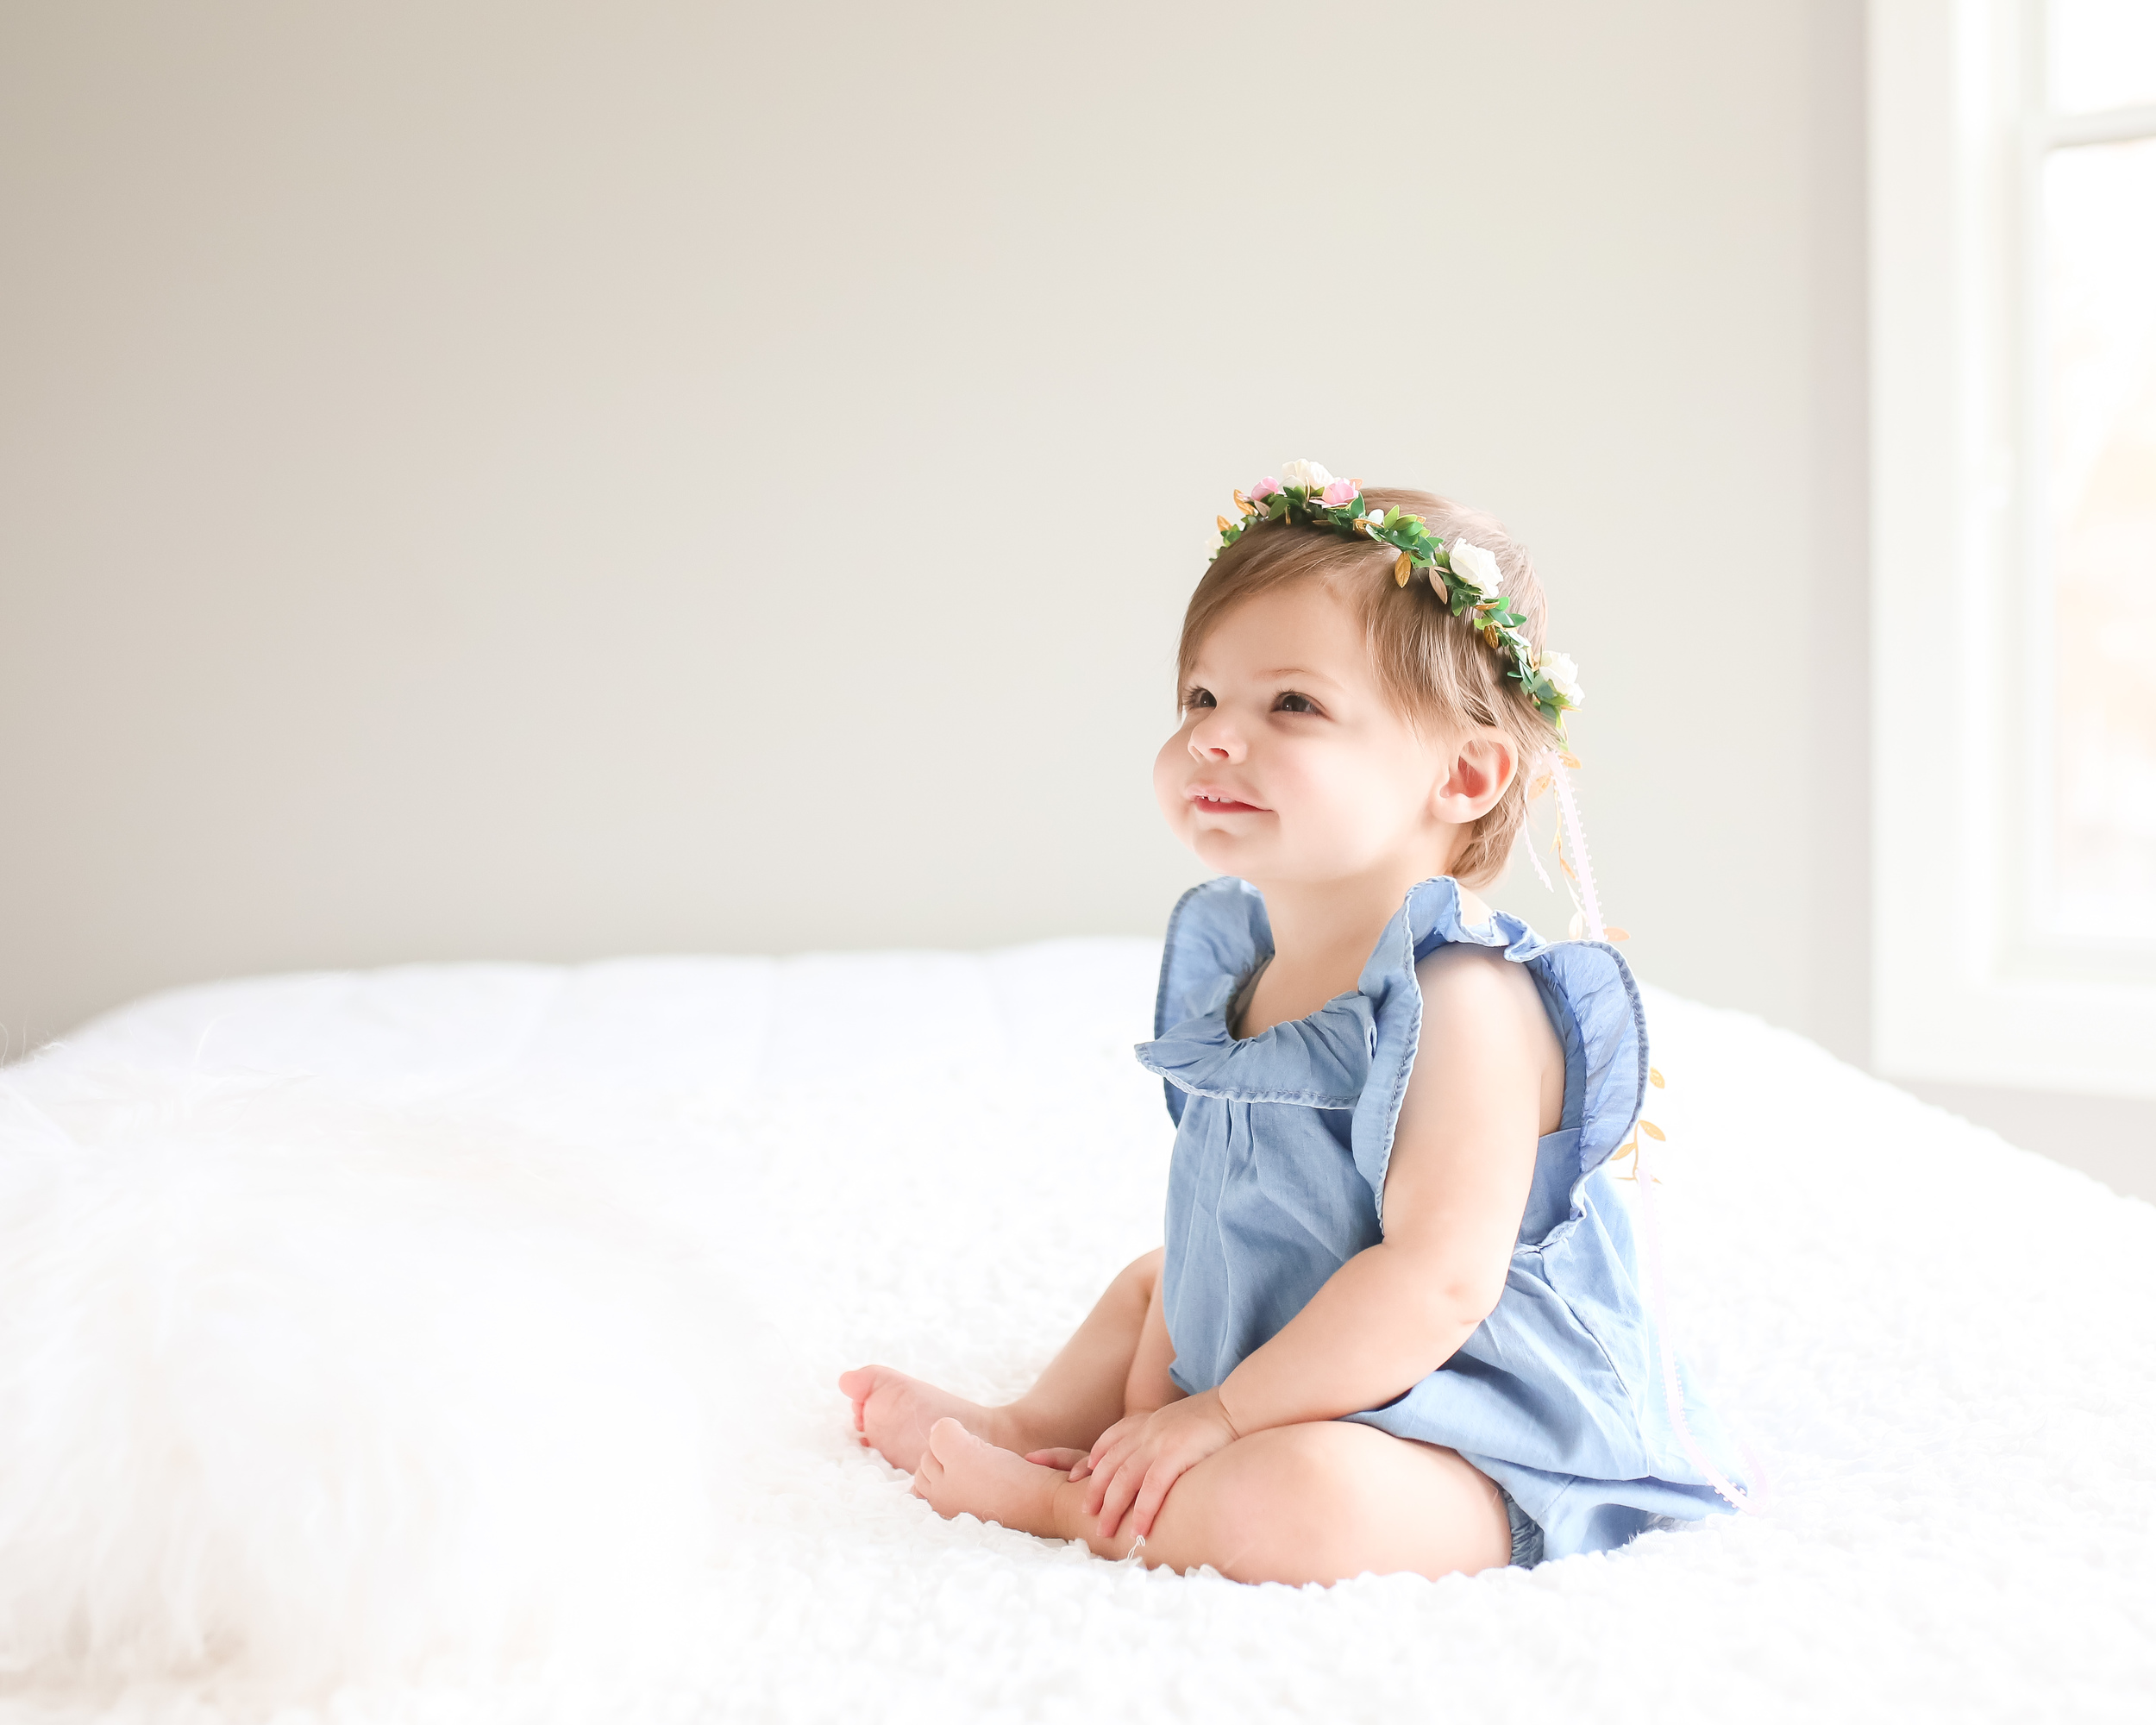 baby girl floral crown on bed